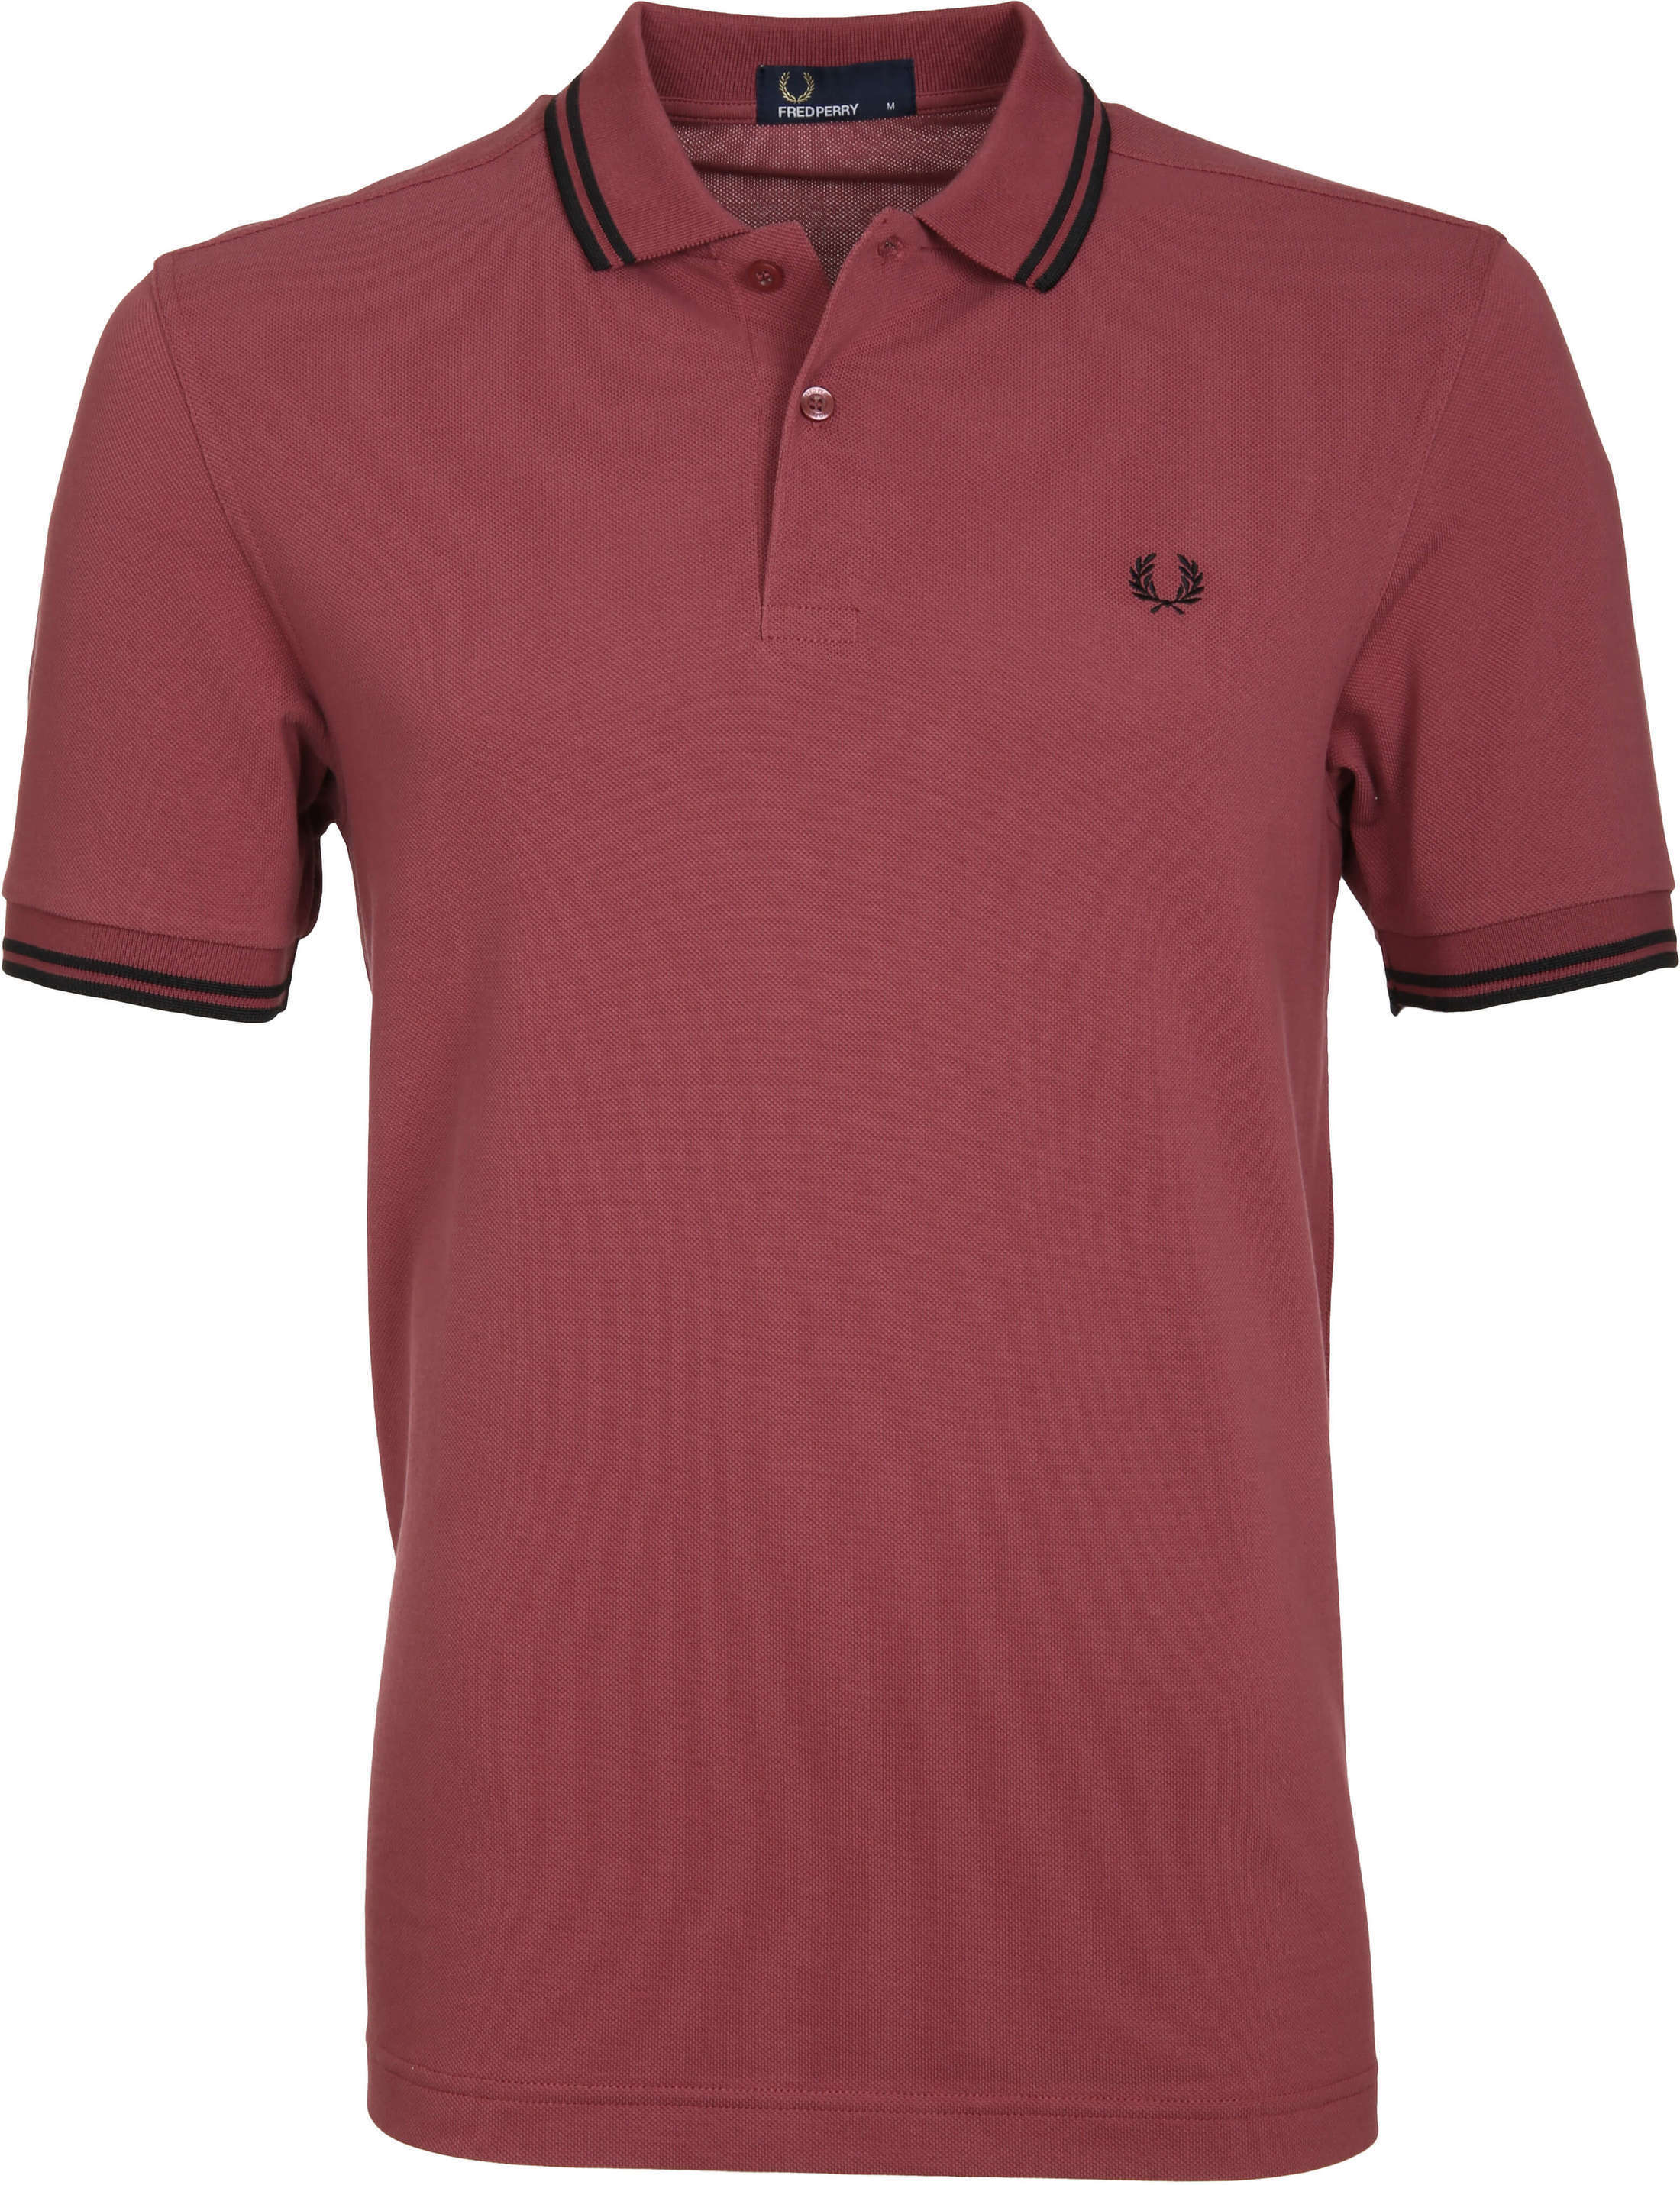 Fred Perry Poloshirt G36 Rot foto 0